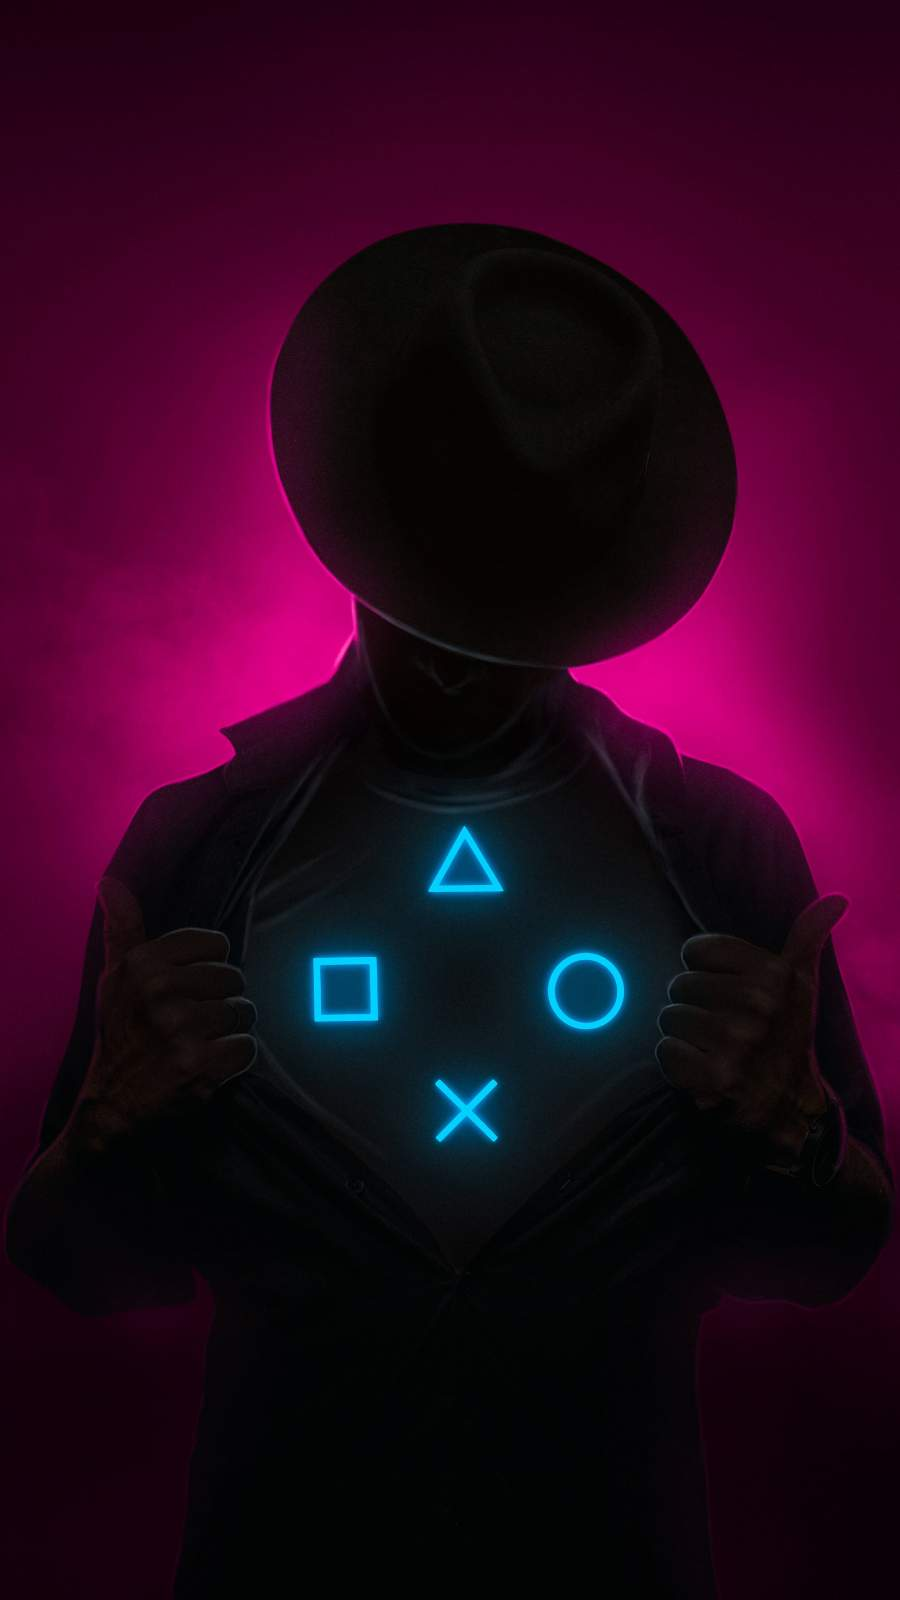 The Gamer iPhone Wallpaper